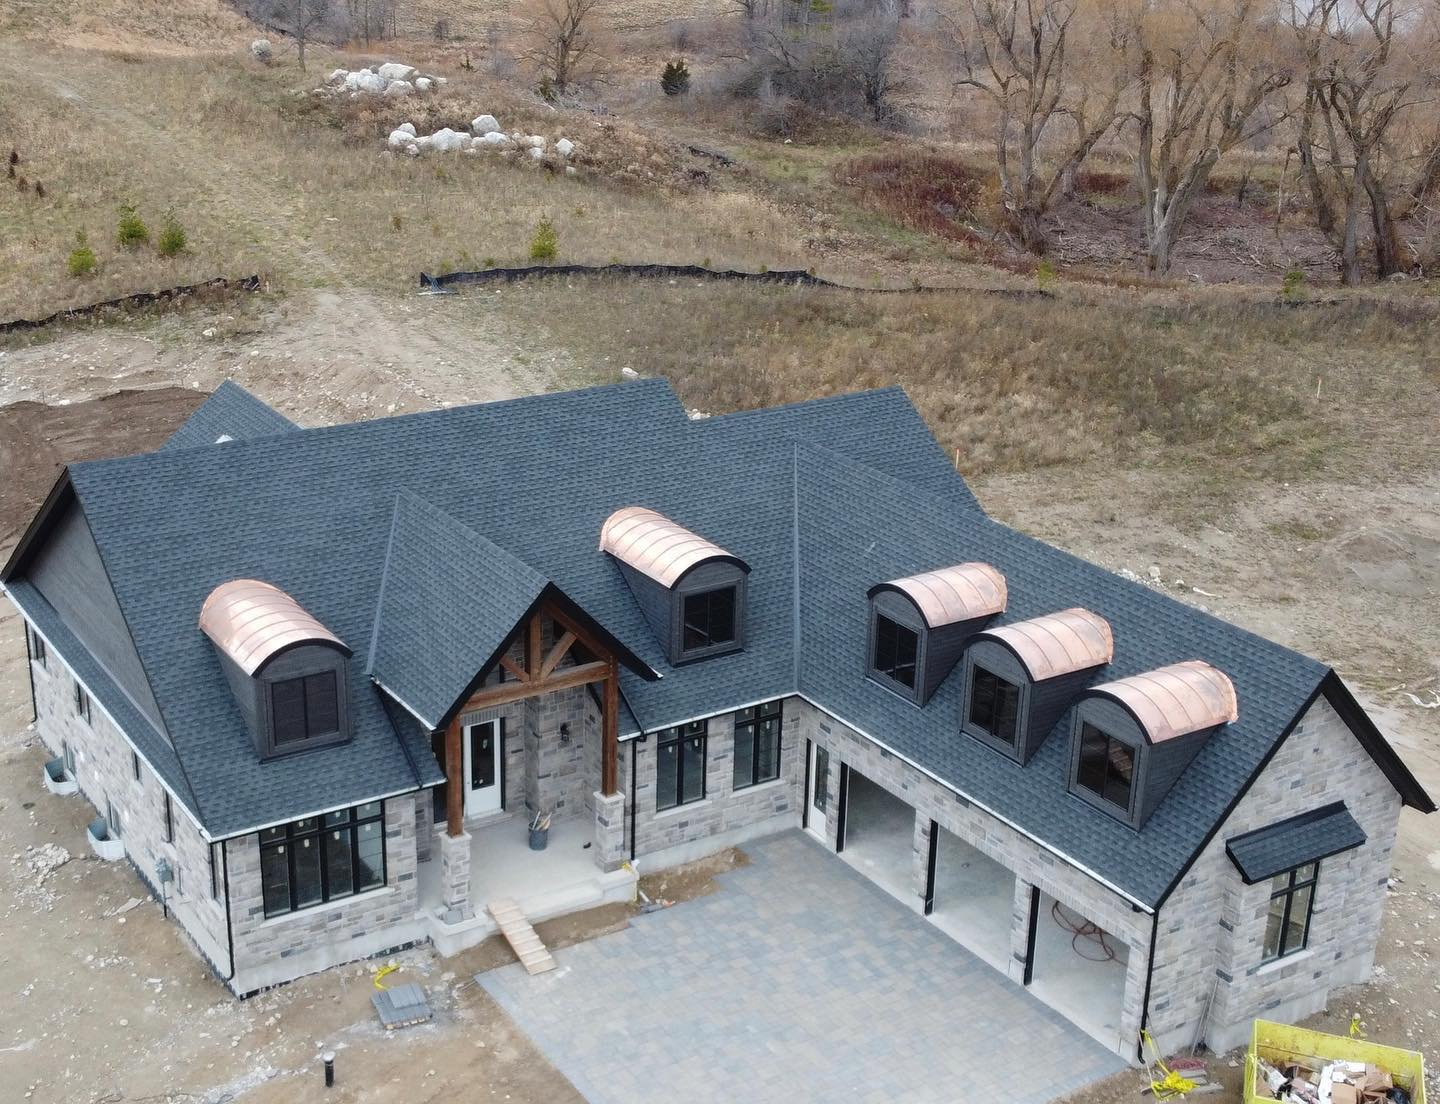 Beautiful roof on this gorgeous Stewarts Landing model home built by @geminihomebuilders in Morriston. . . . #modelhome #gaftimberlinehd #gafmasterelite #copperroof #roofingcontractor #guelphbusiness